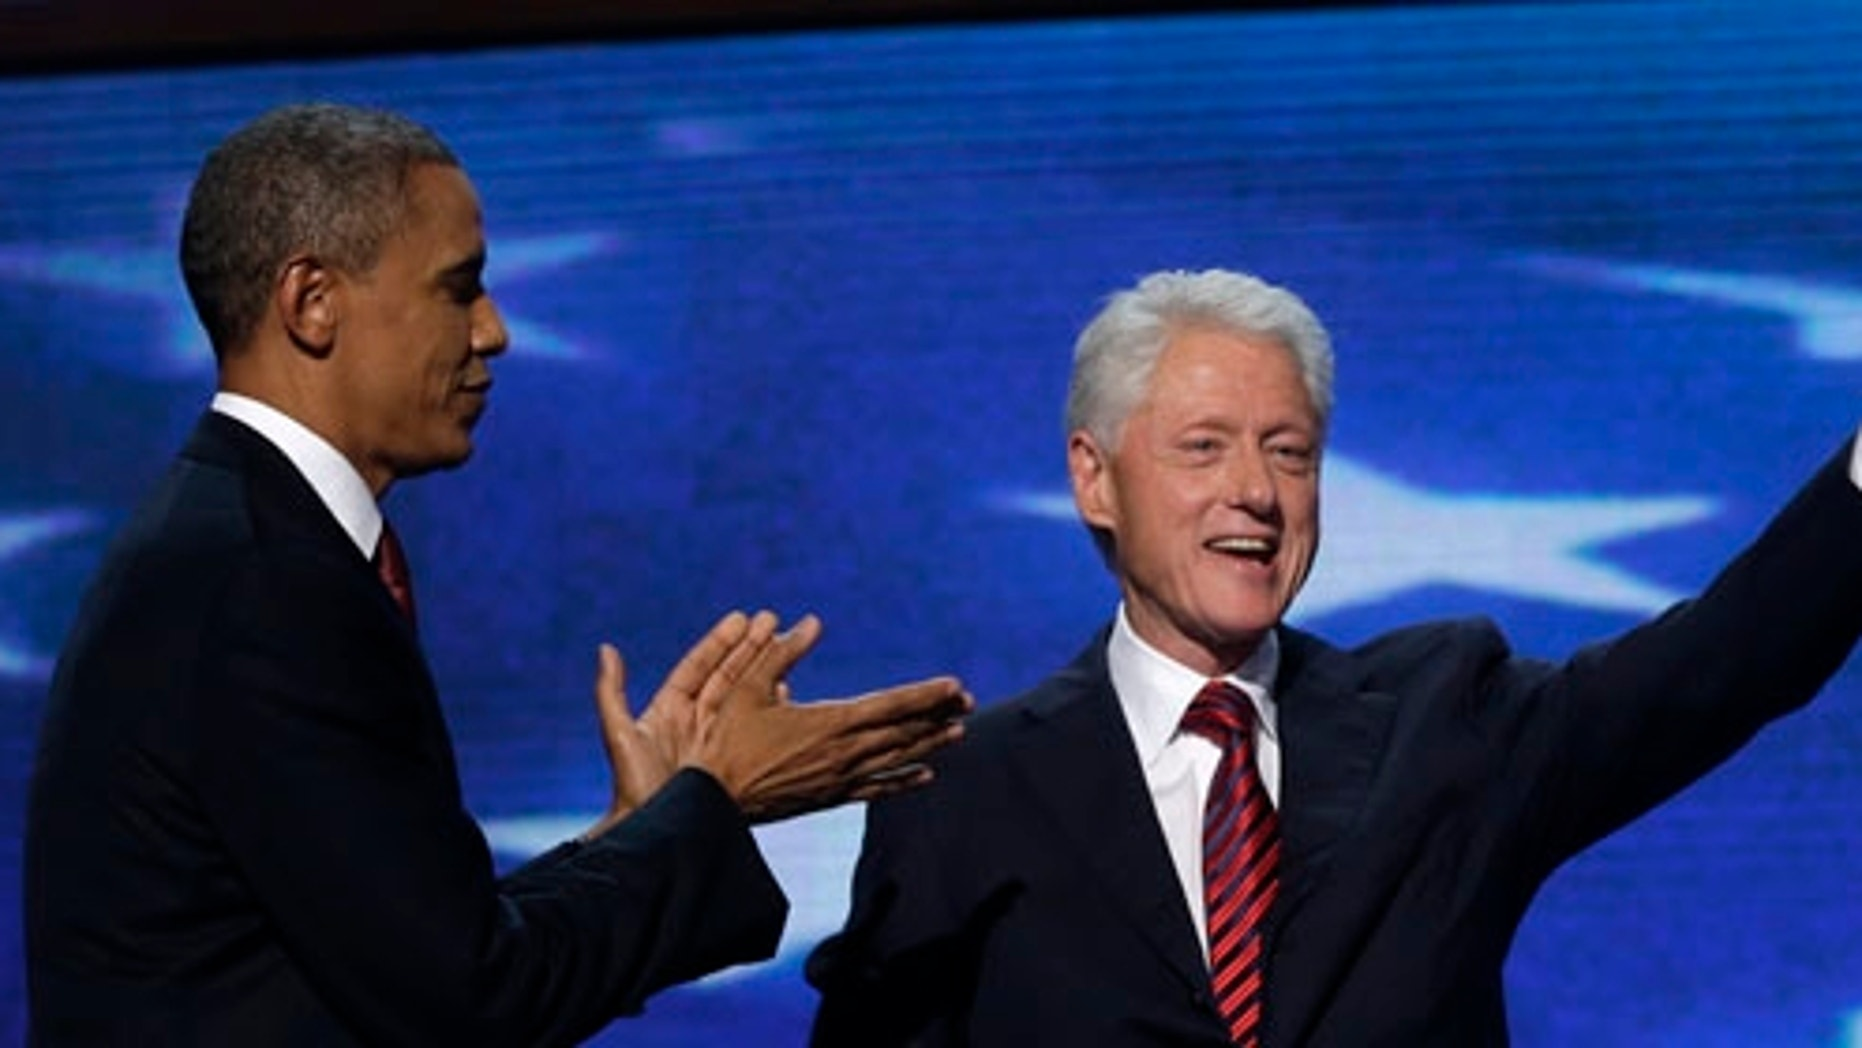 Former President Bill Clinton waves after addressing the Democratic National Convention as President Barack Obama greets in Charlotte, N.C., on Wednesday, Sept. 5, 2012. (AP Photo/Charles Dharapak)